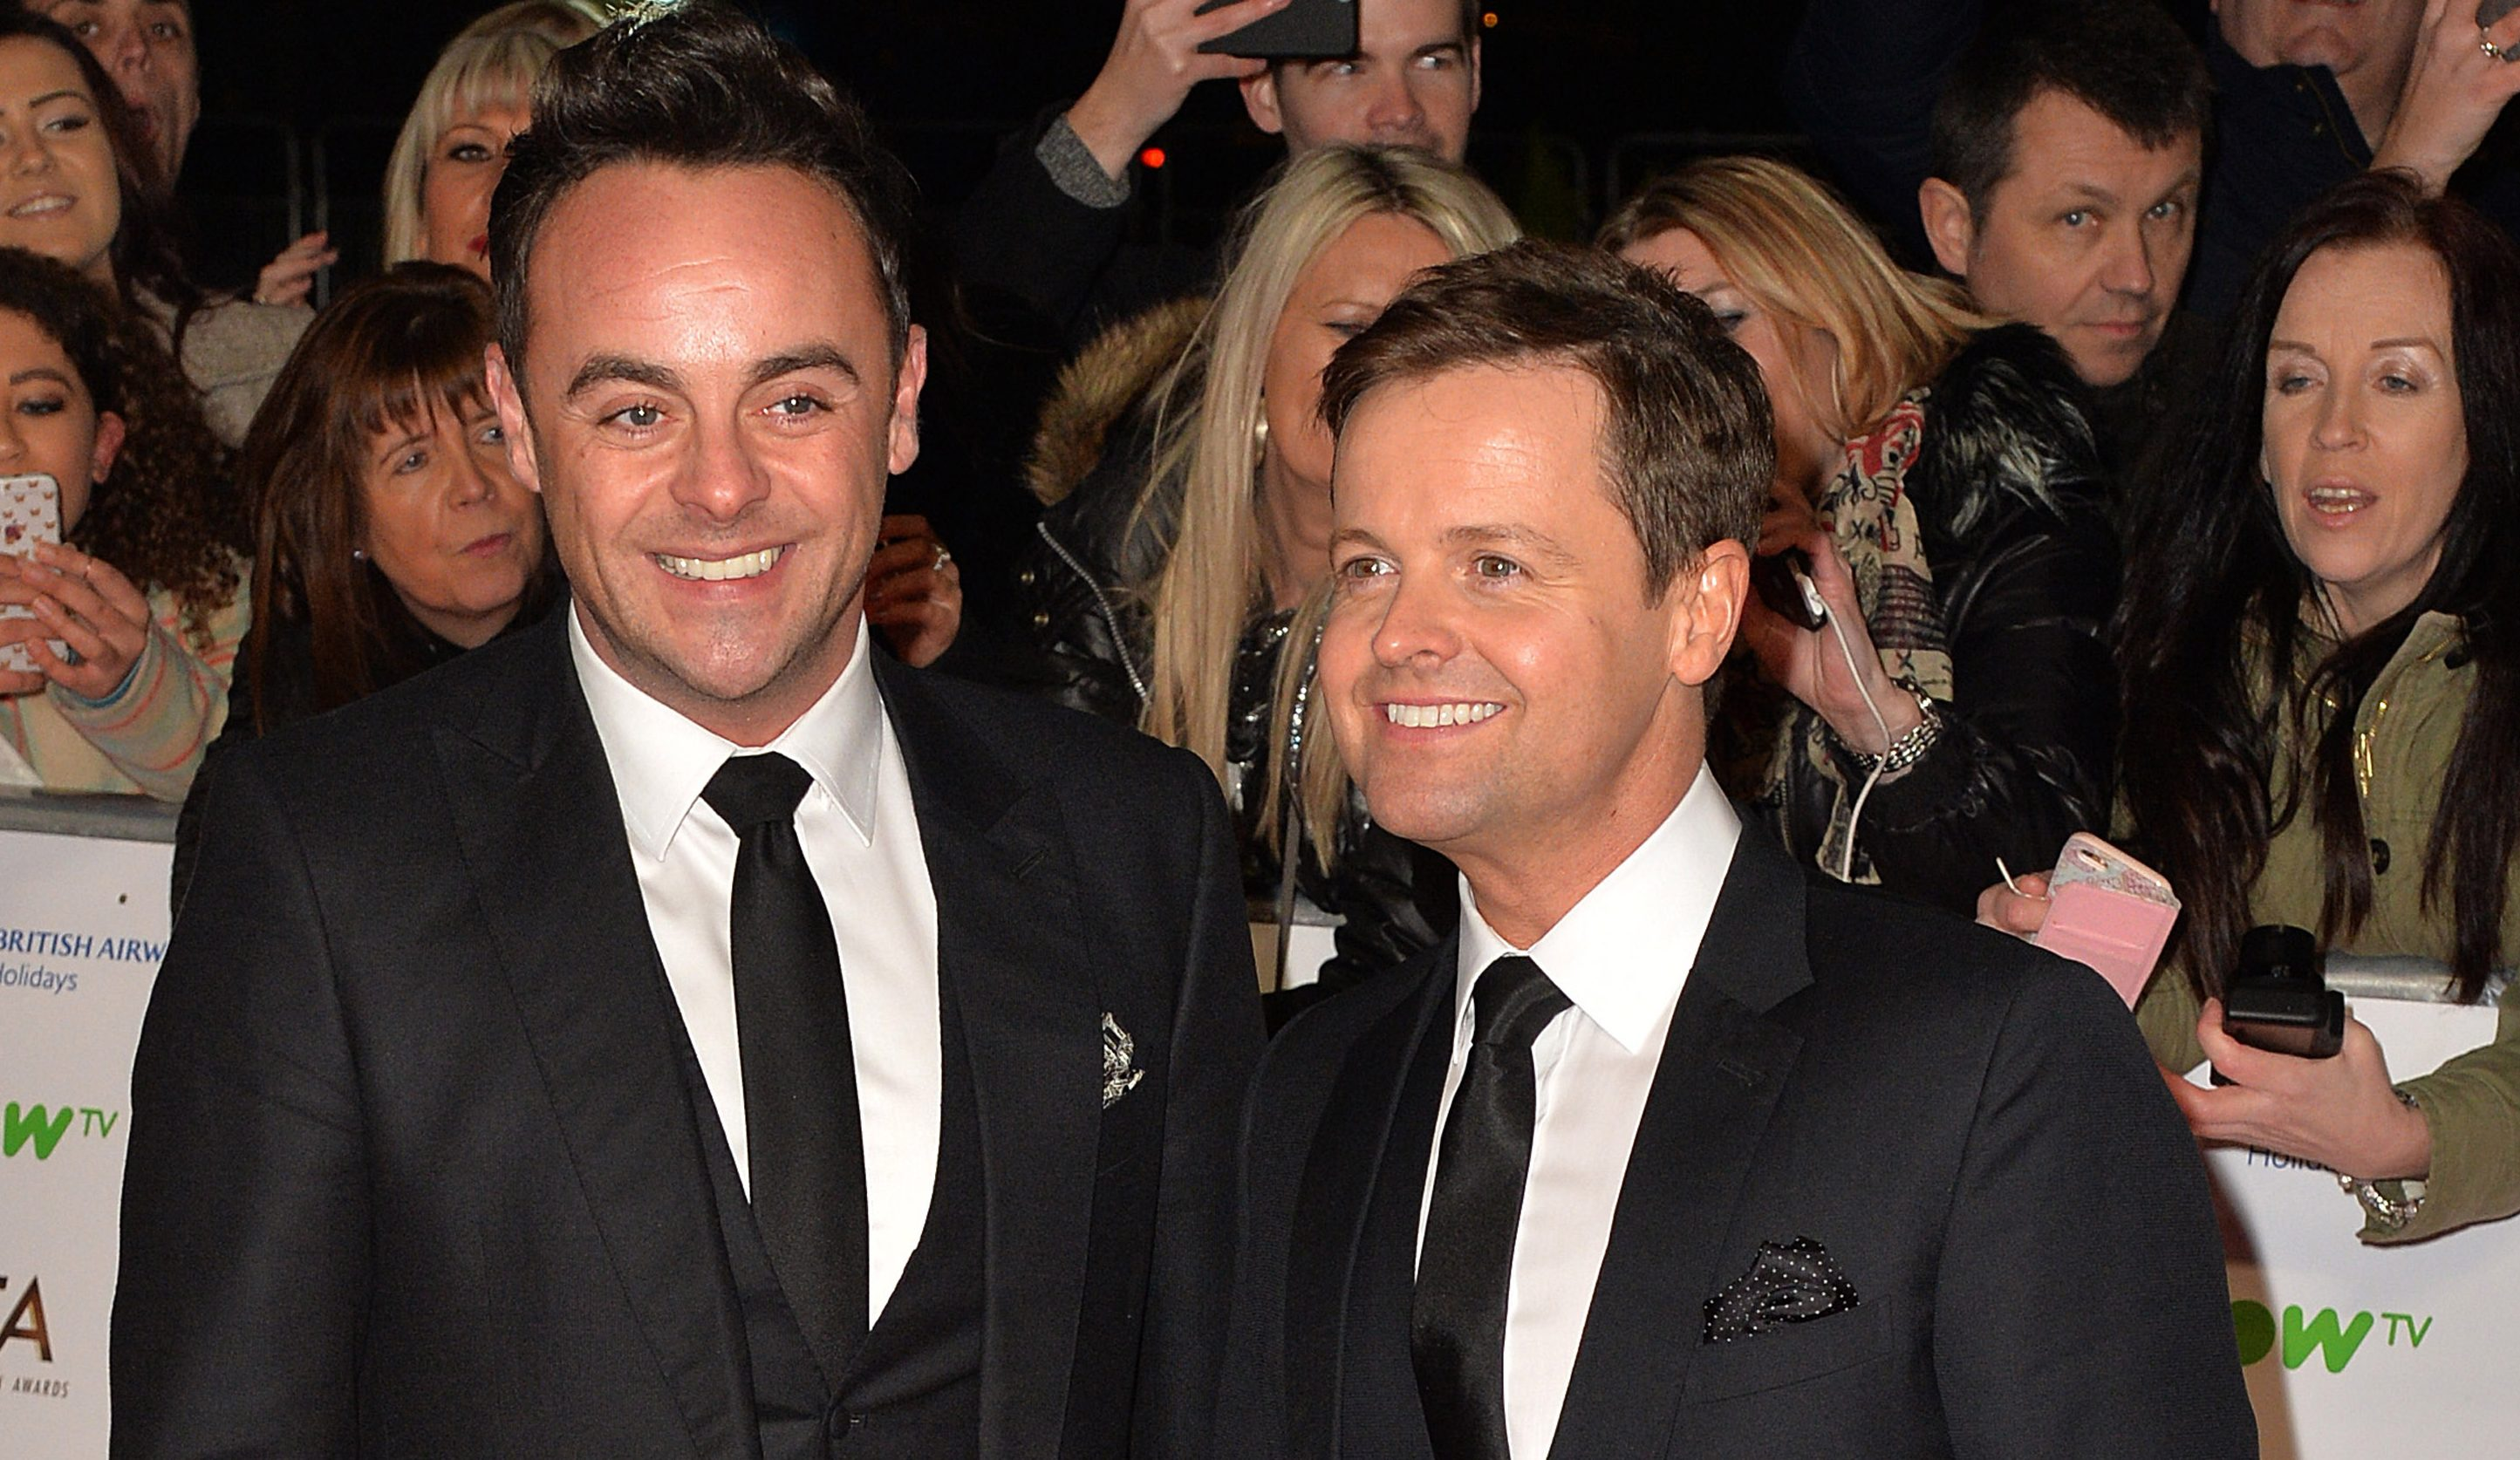 Ant and Dec to find out if they're related on new show?